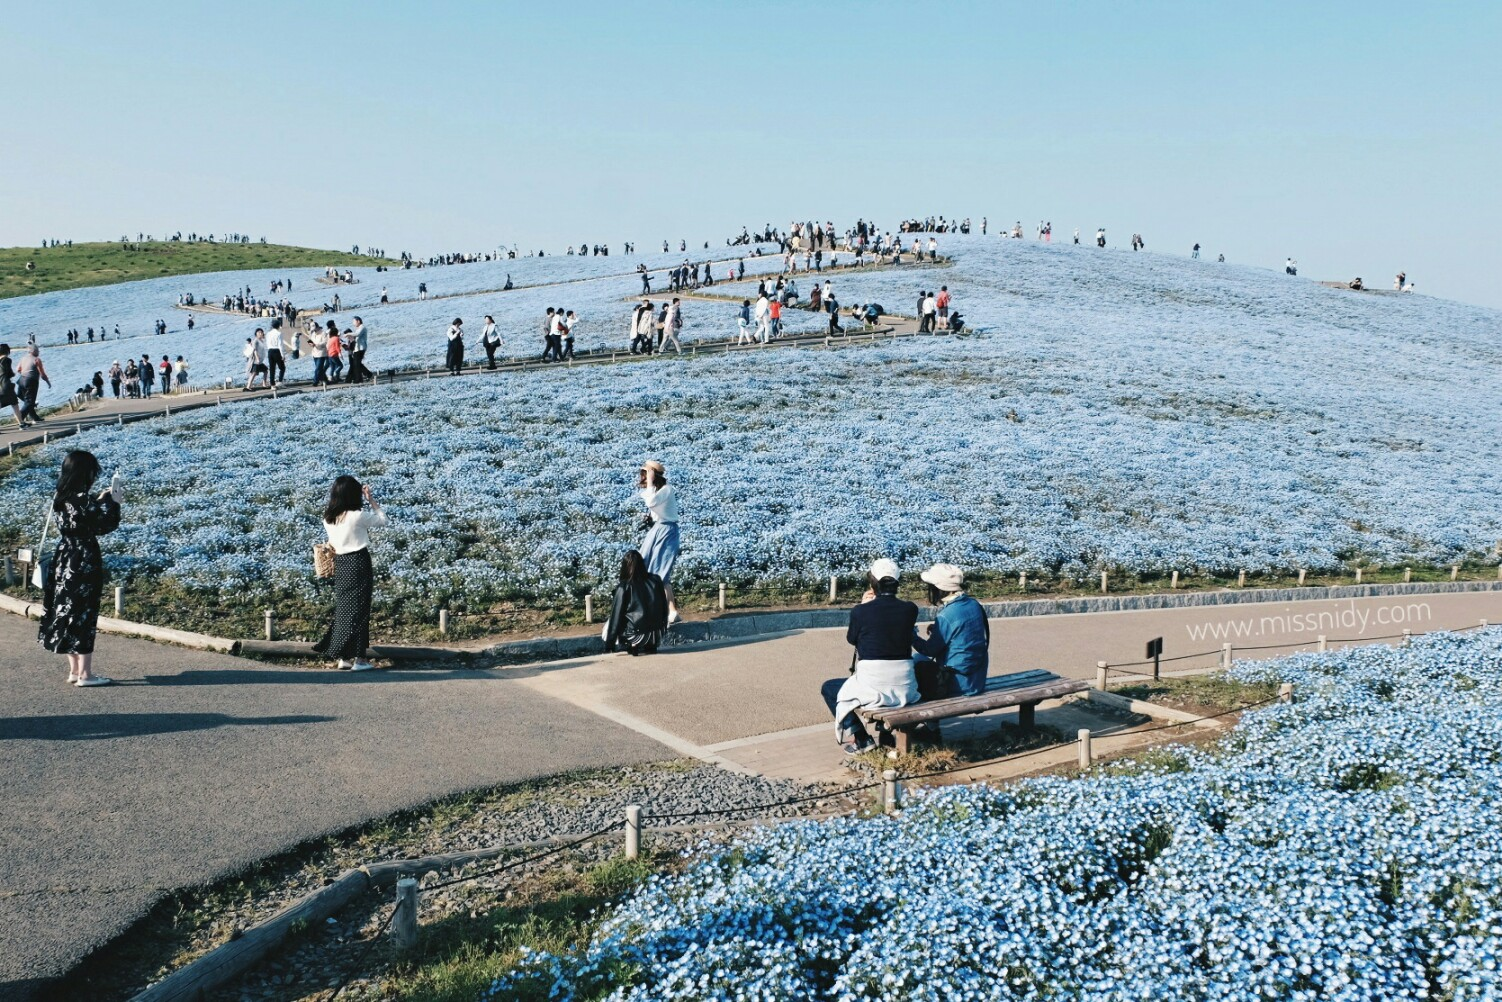 nemophilia in hitachi seaside park japan